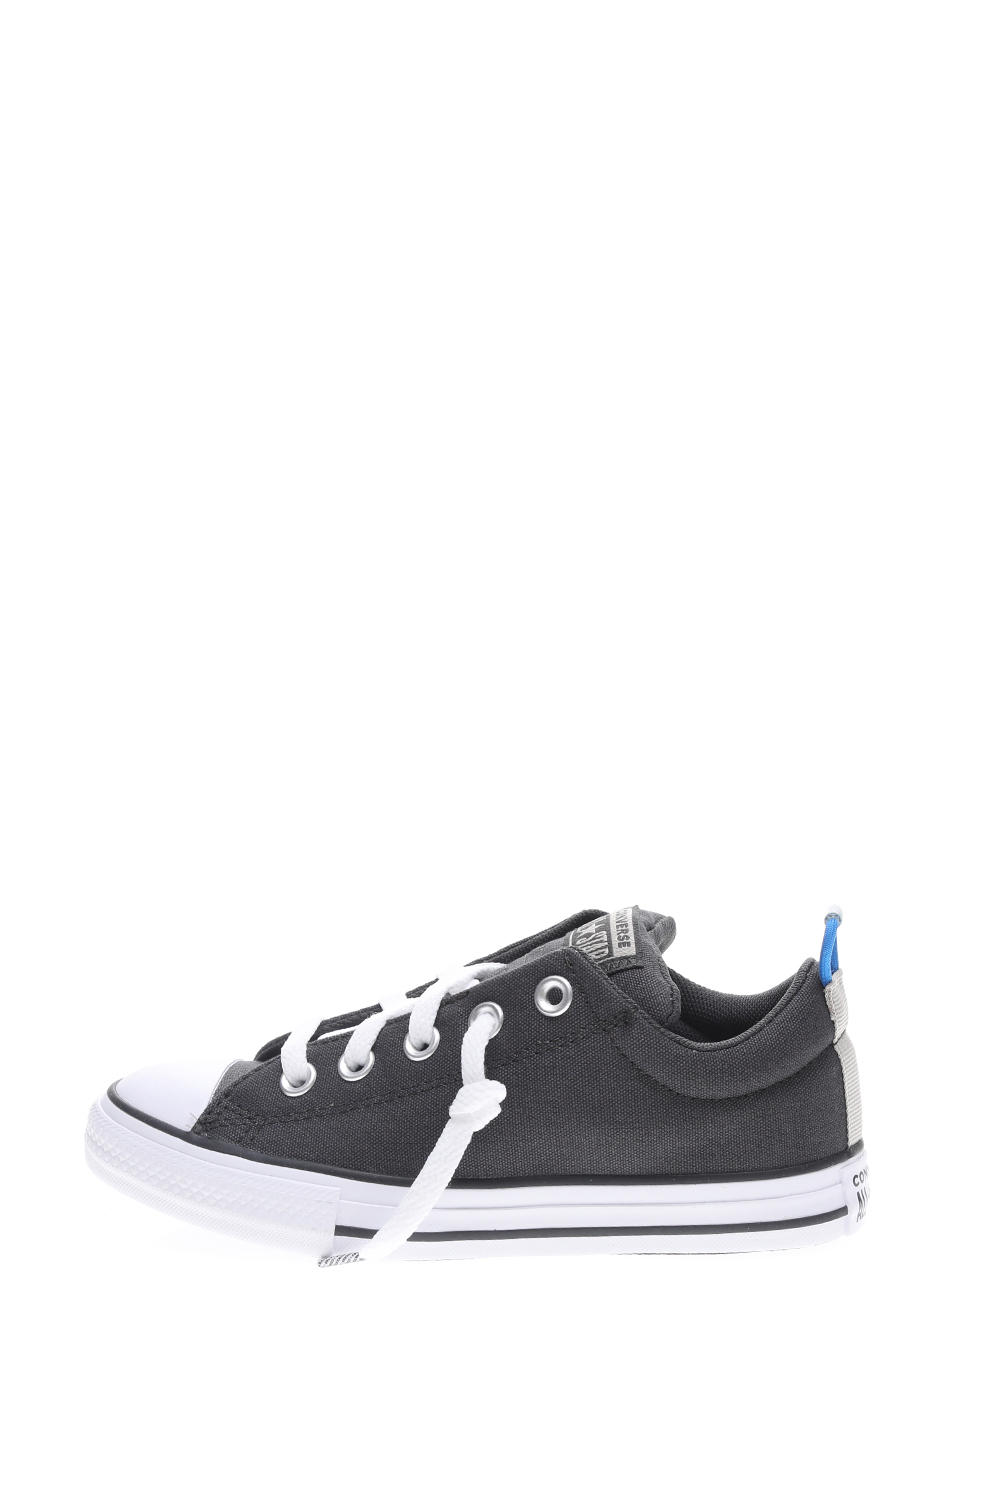 CONVERSE – Παιδικά sneakers CONVERSE CHUCK TAYLOR ALL STAR STREET S γκρι